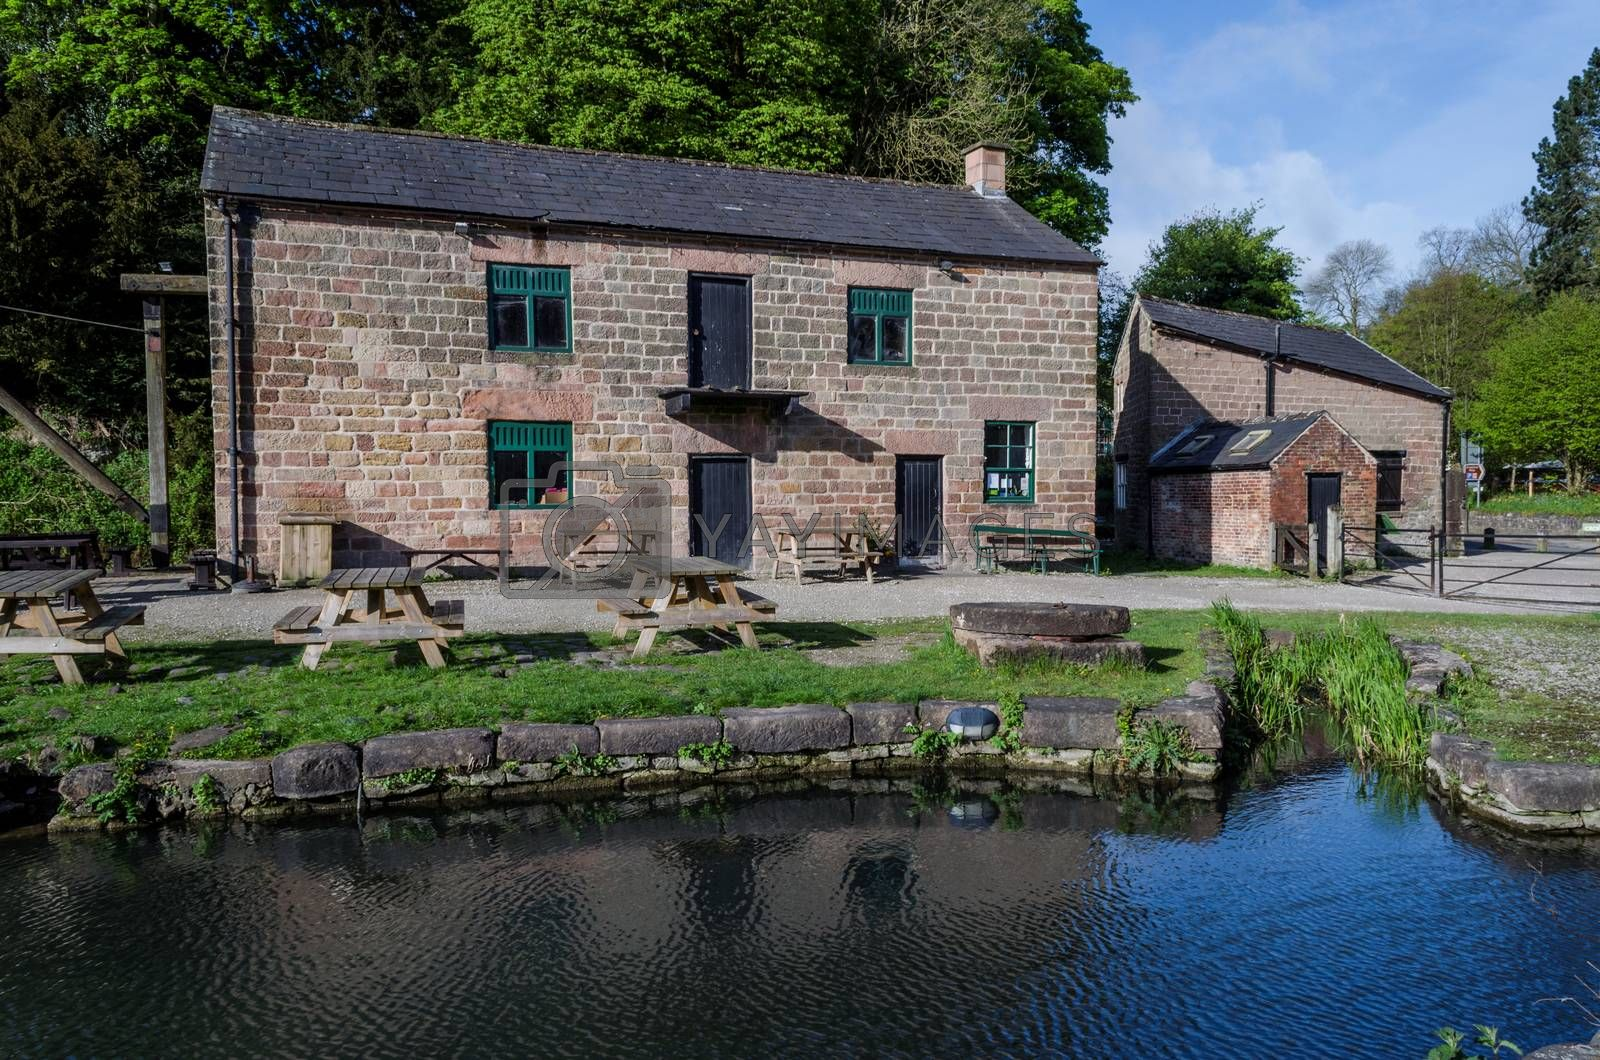 Old building at the side of Cromford Canal in the Peak District, Derbyshire